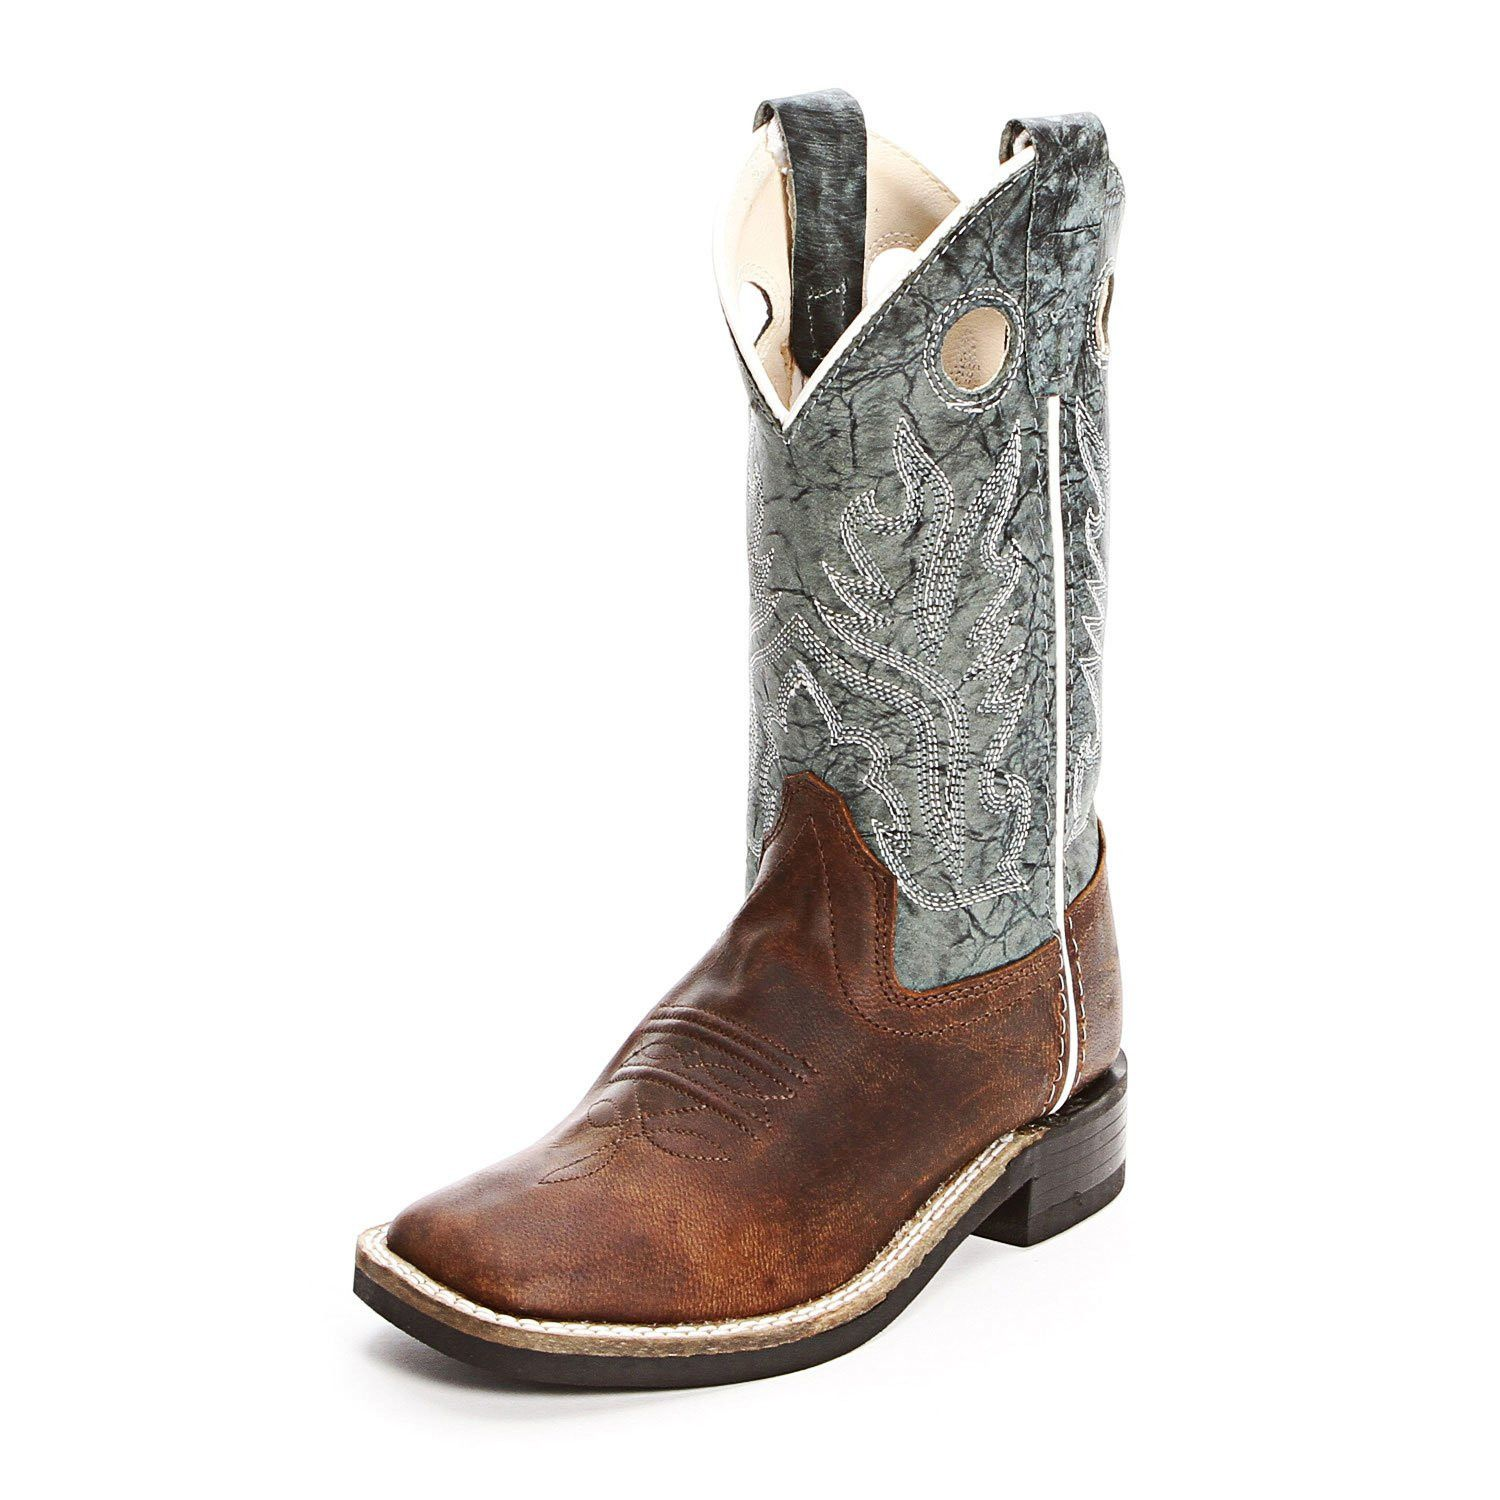 Old West Cowboy Boots Youth In 2020 Cowboy Boots Boots Old West Boots